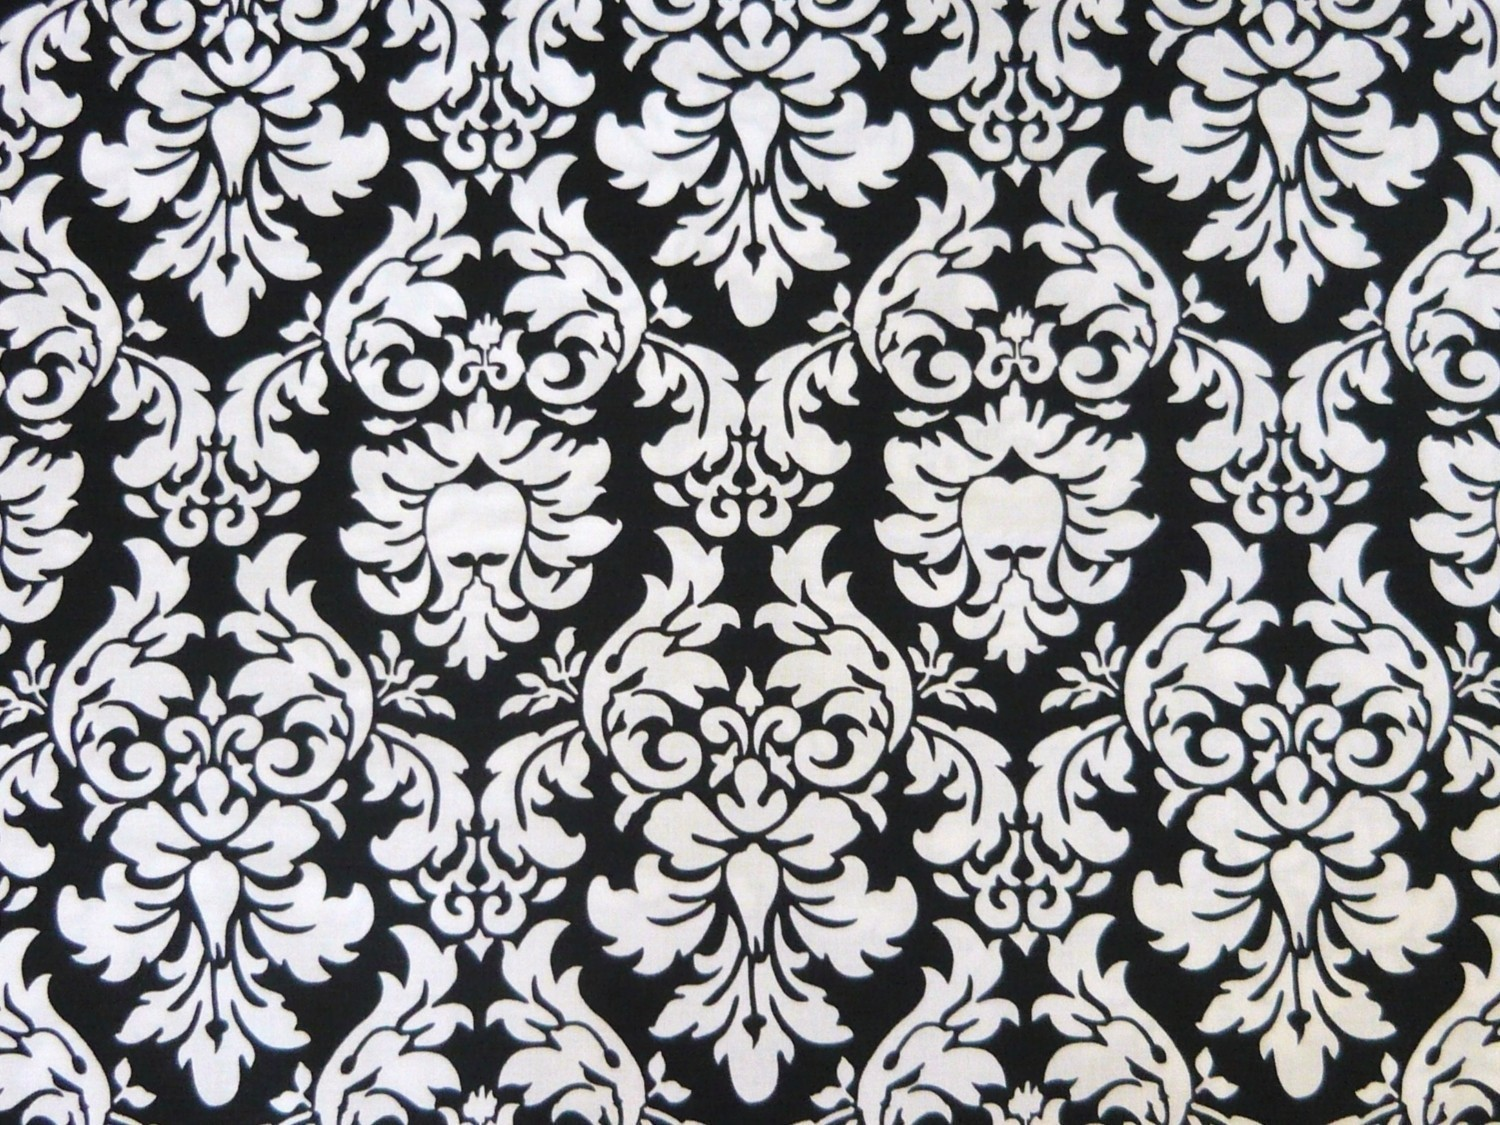 Black and white damask wallpaper 14 background for Damask wallpaper